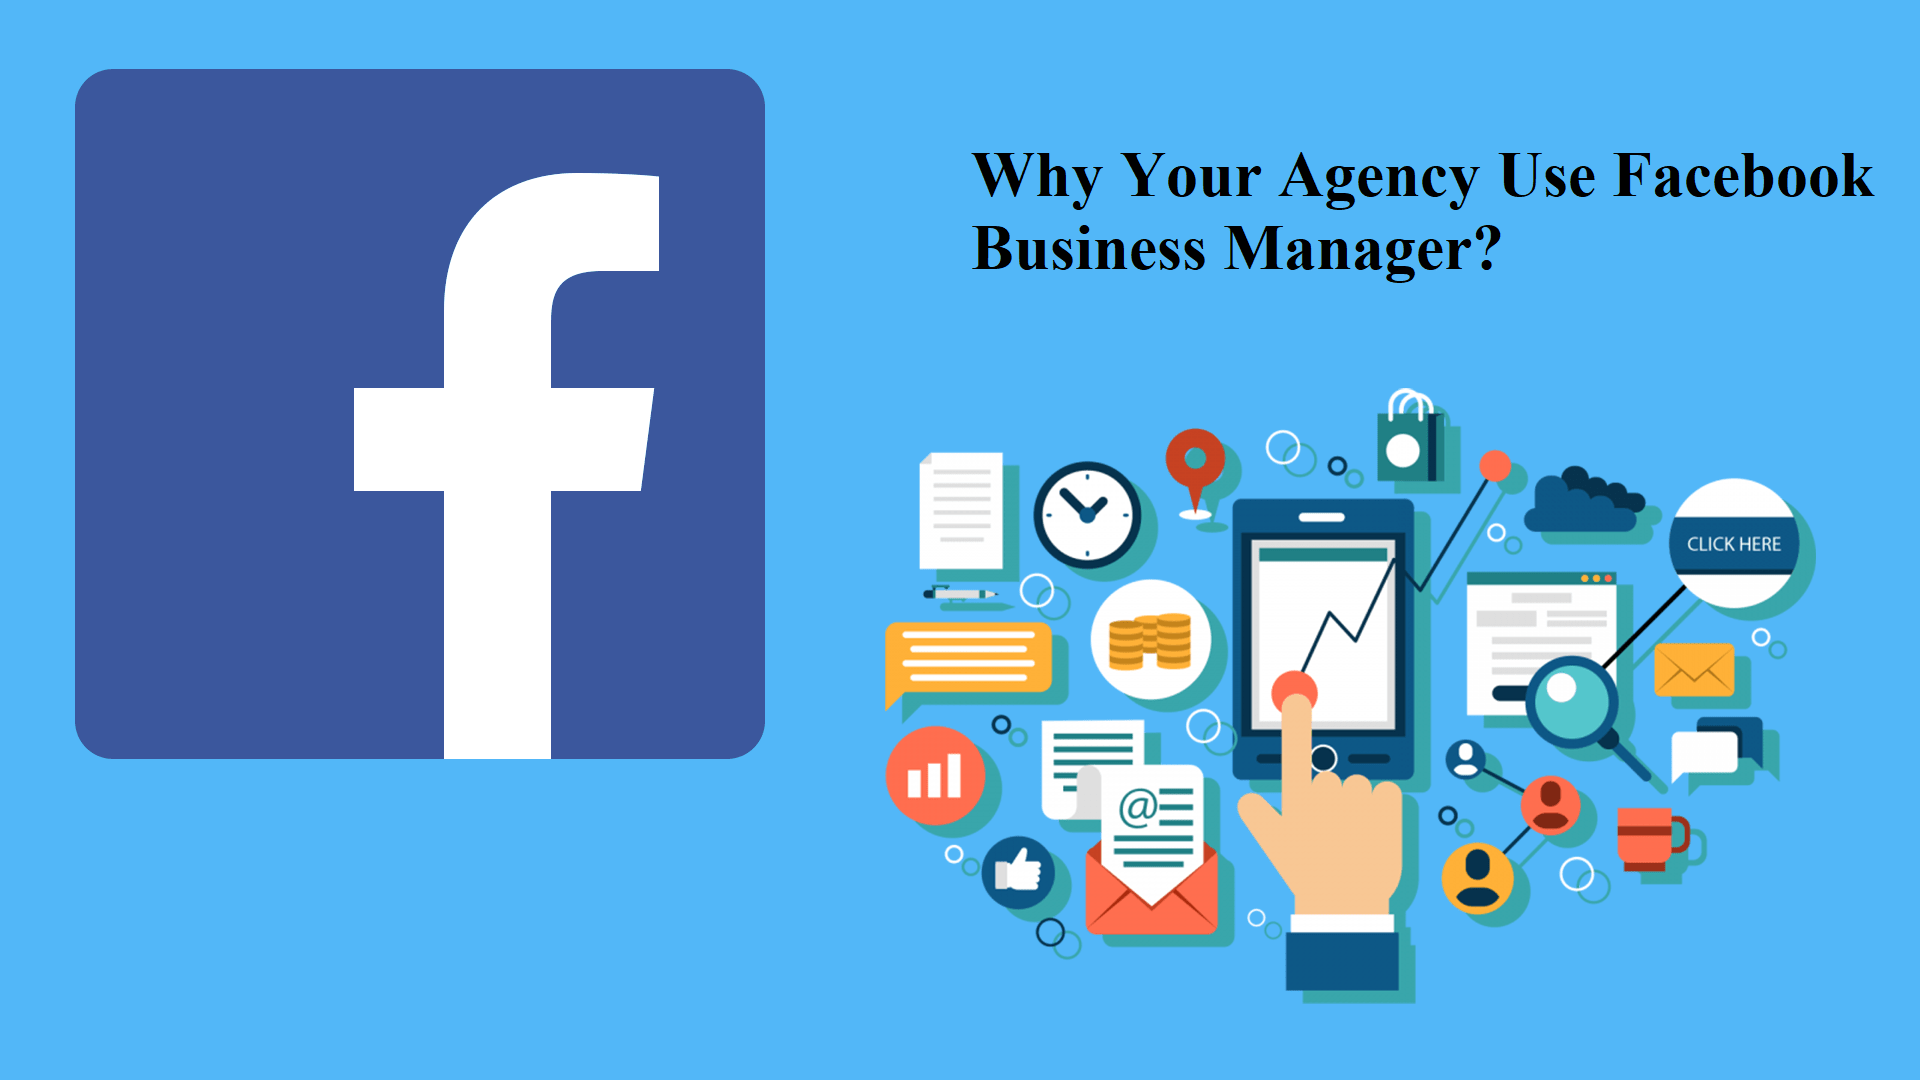 Why Your Agency Use Facebook Business Manager?